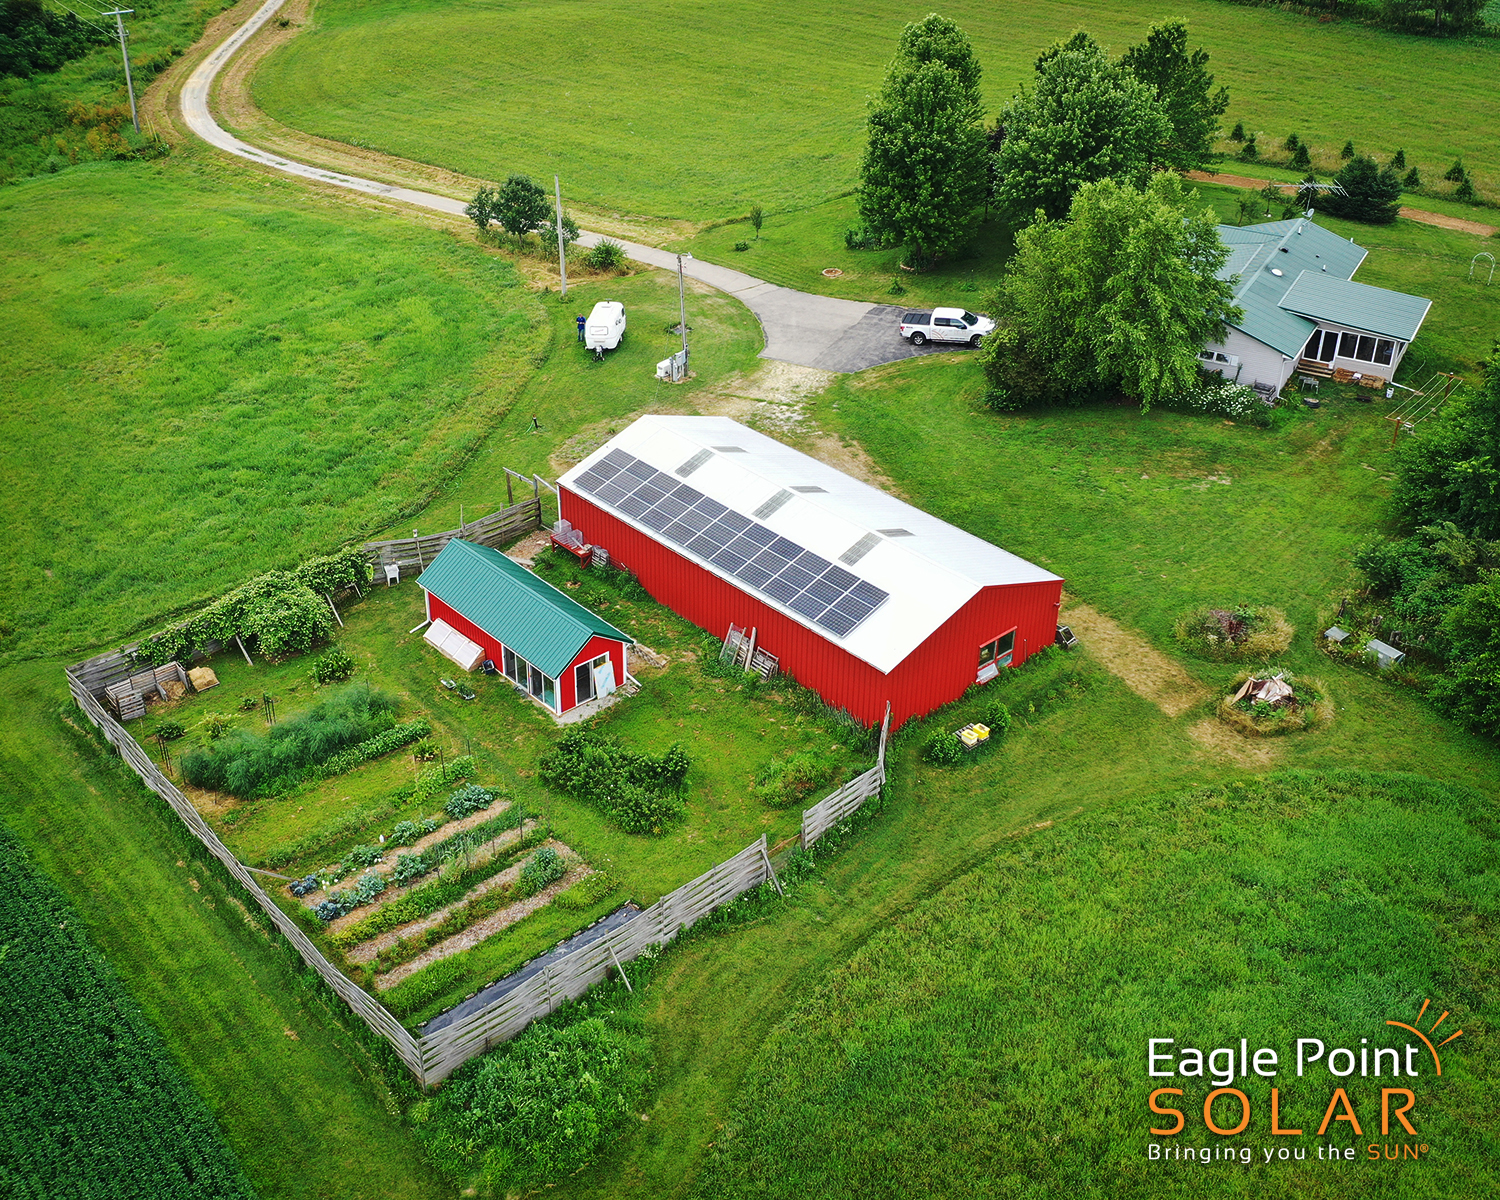 Arial photo of roof mounted solar array on small farm shed.